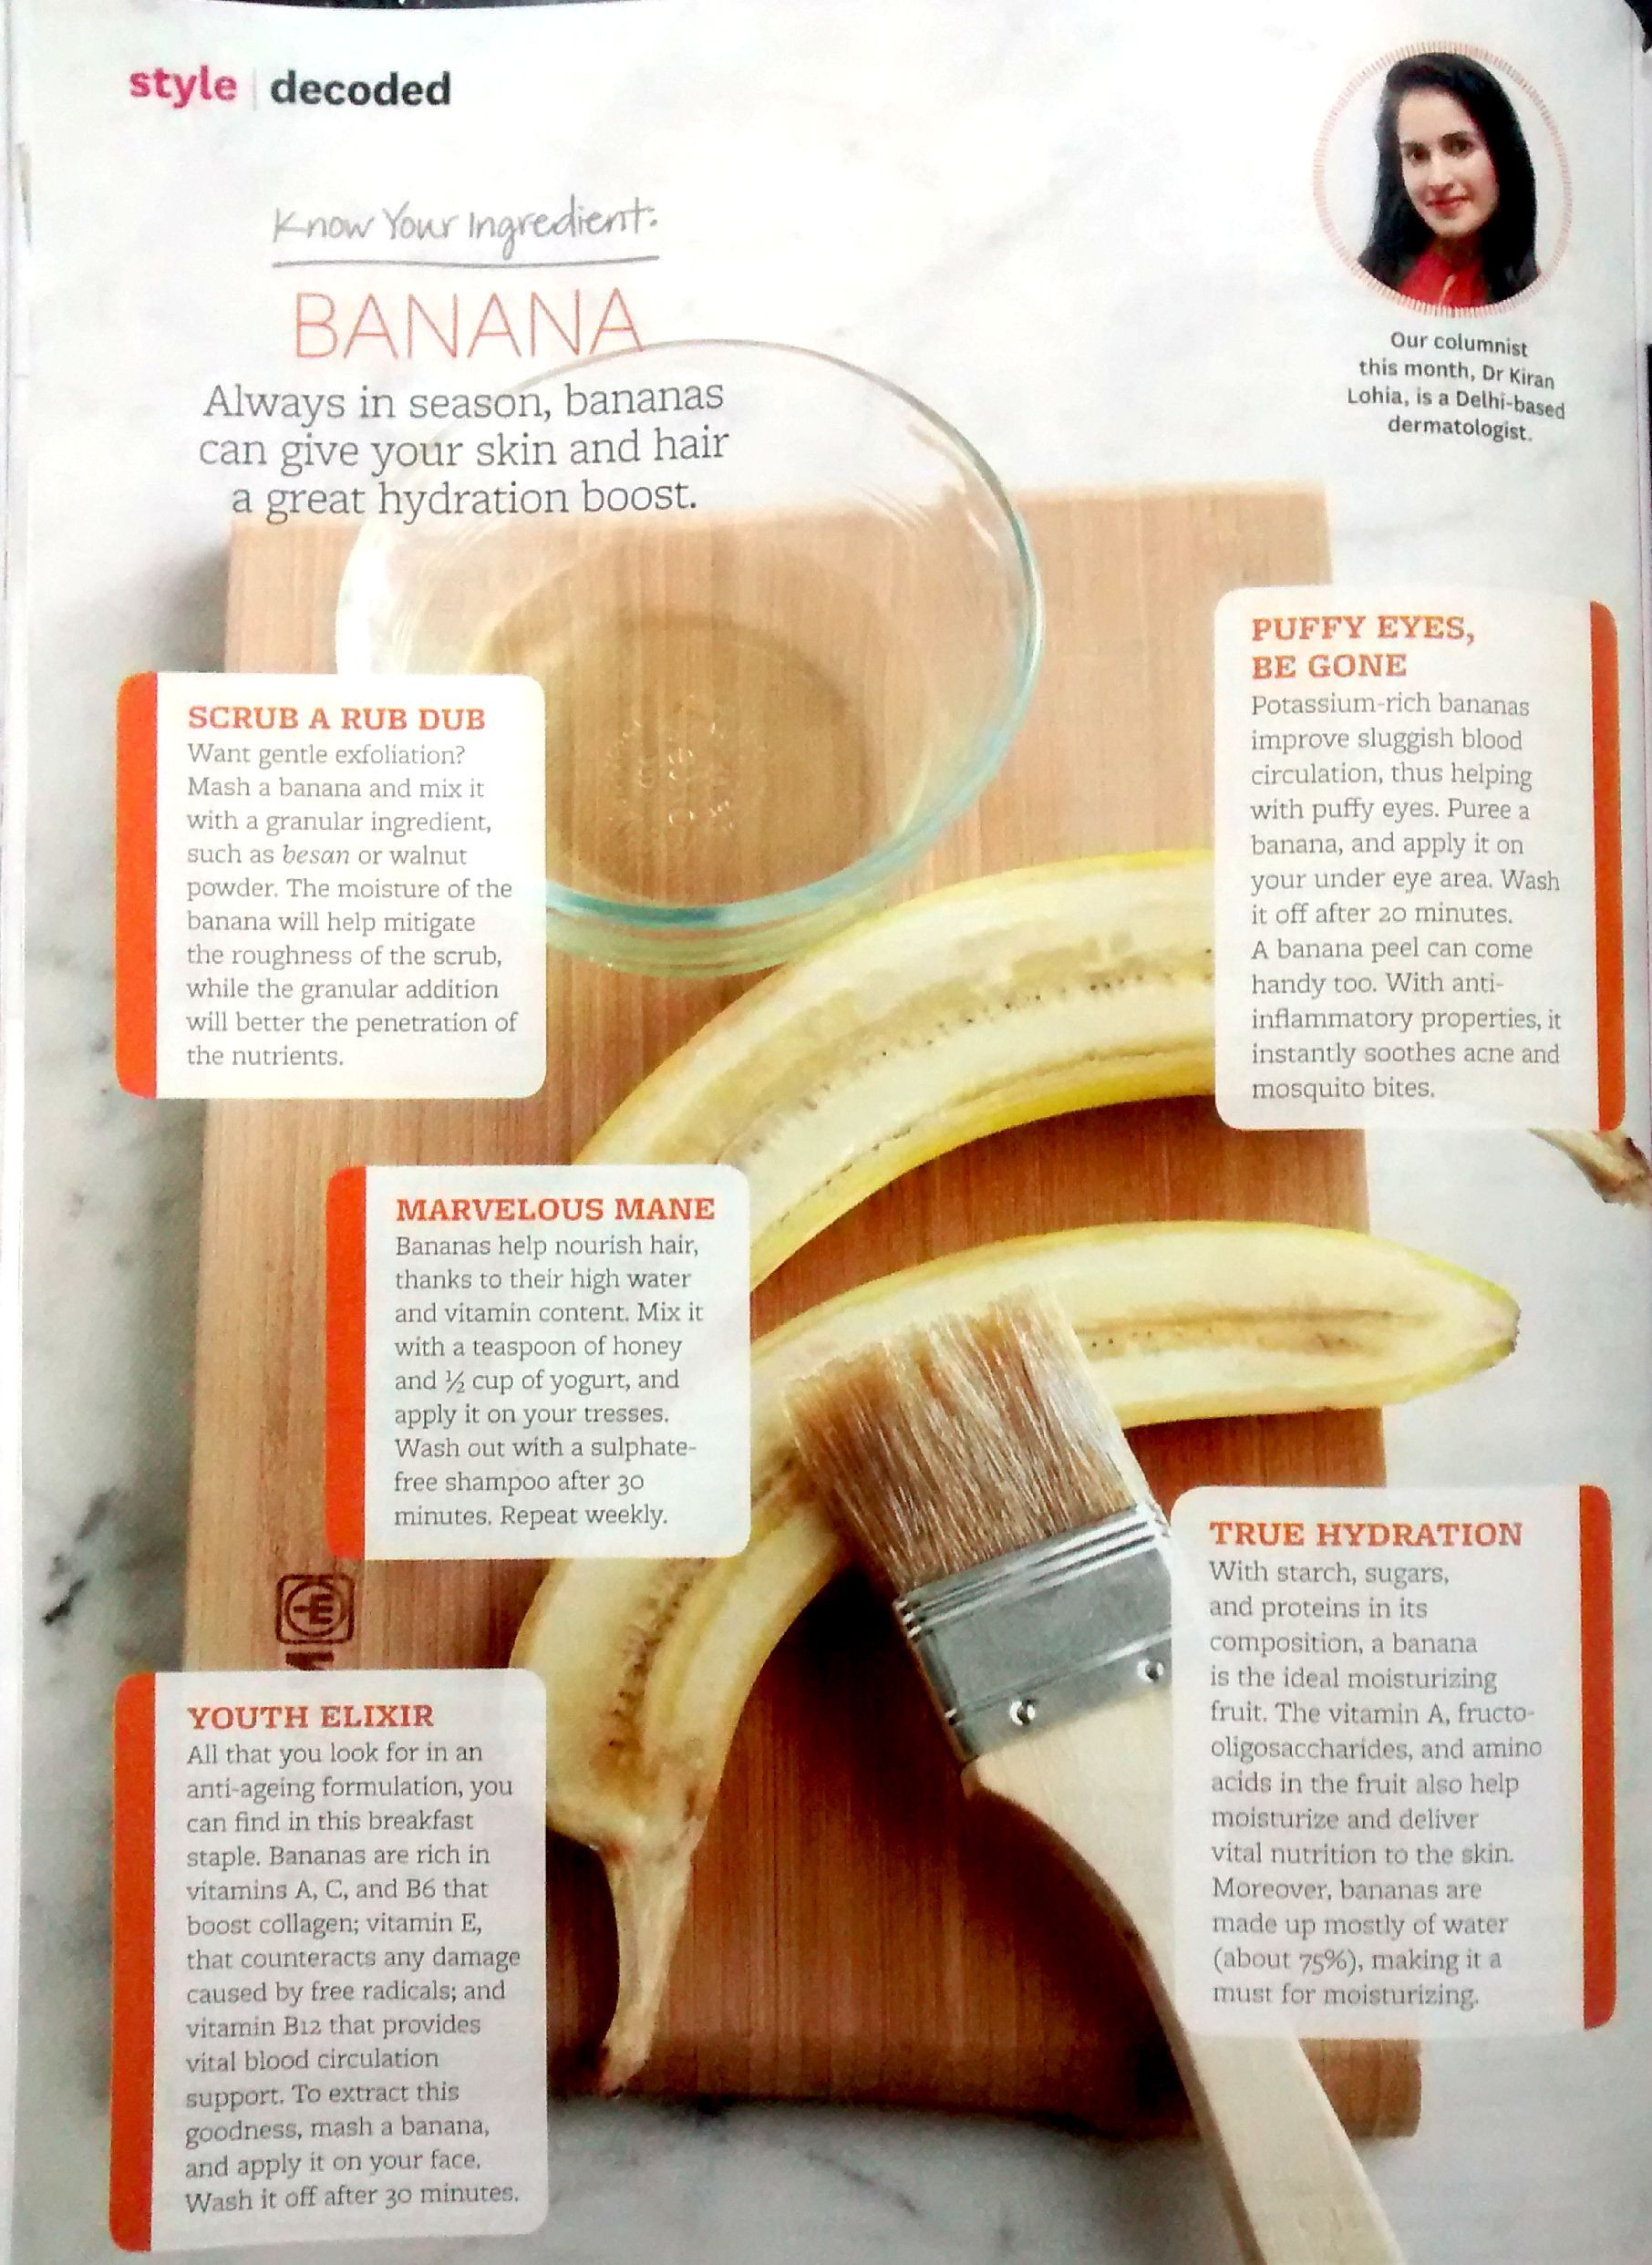 Beauty Food Revealed!!! Banana can give your Skin and Hair a